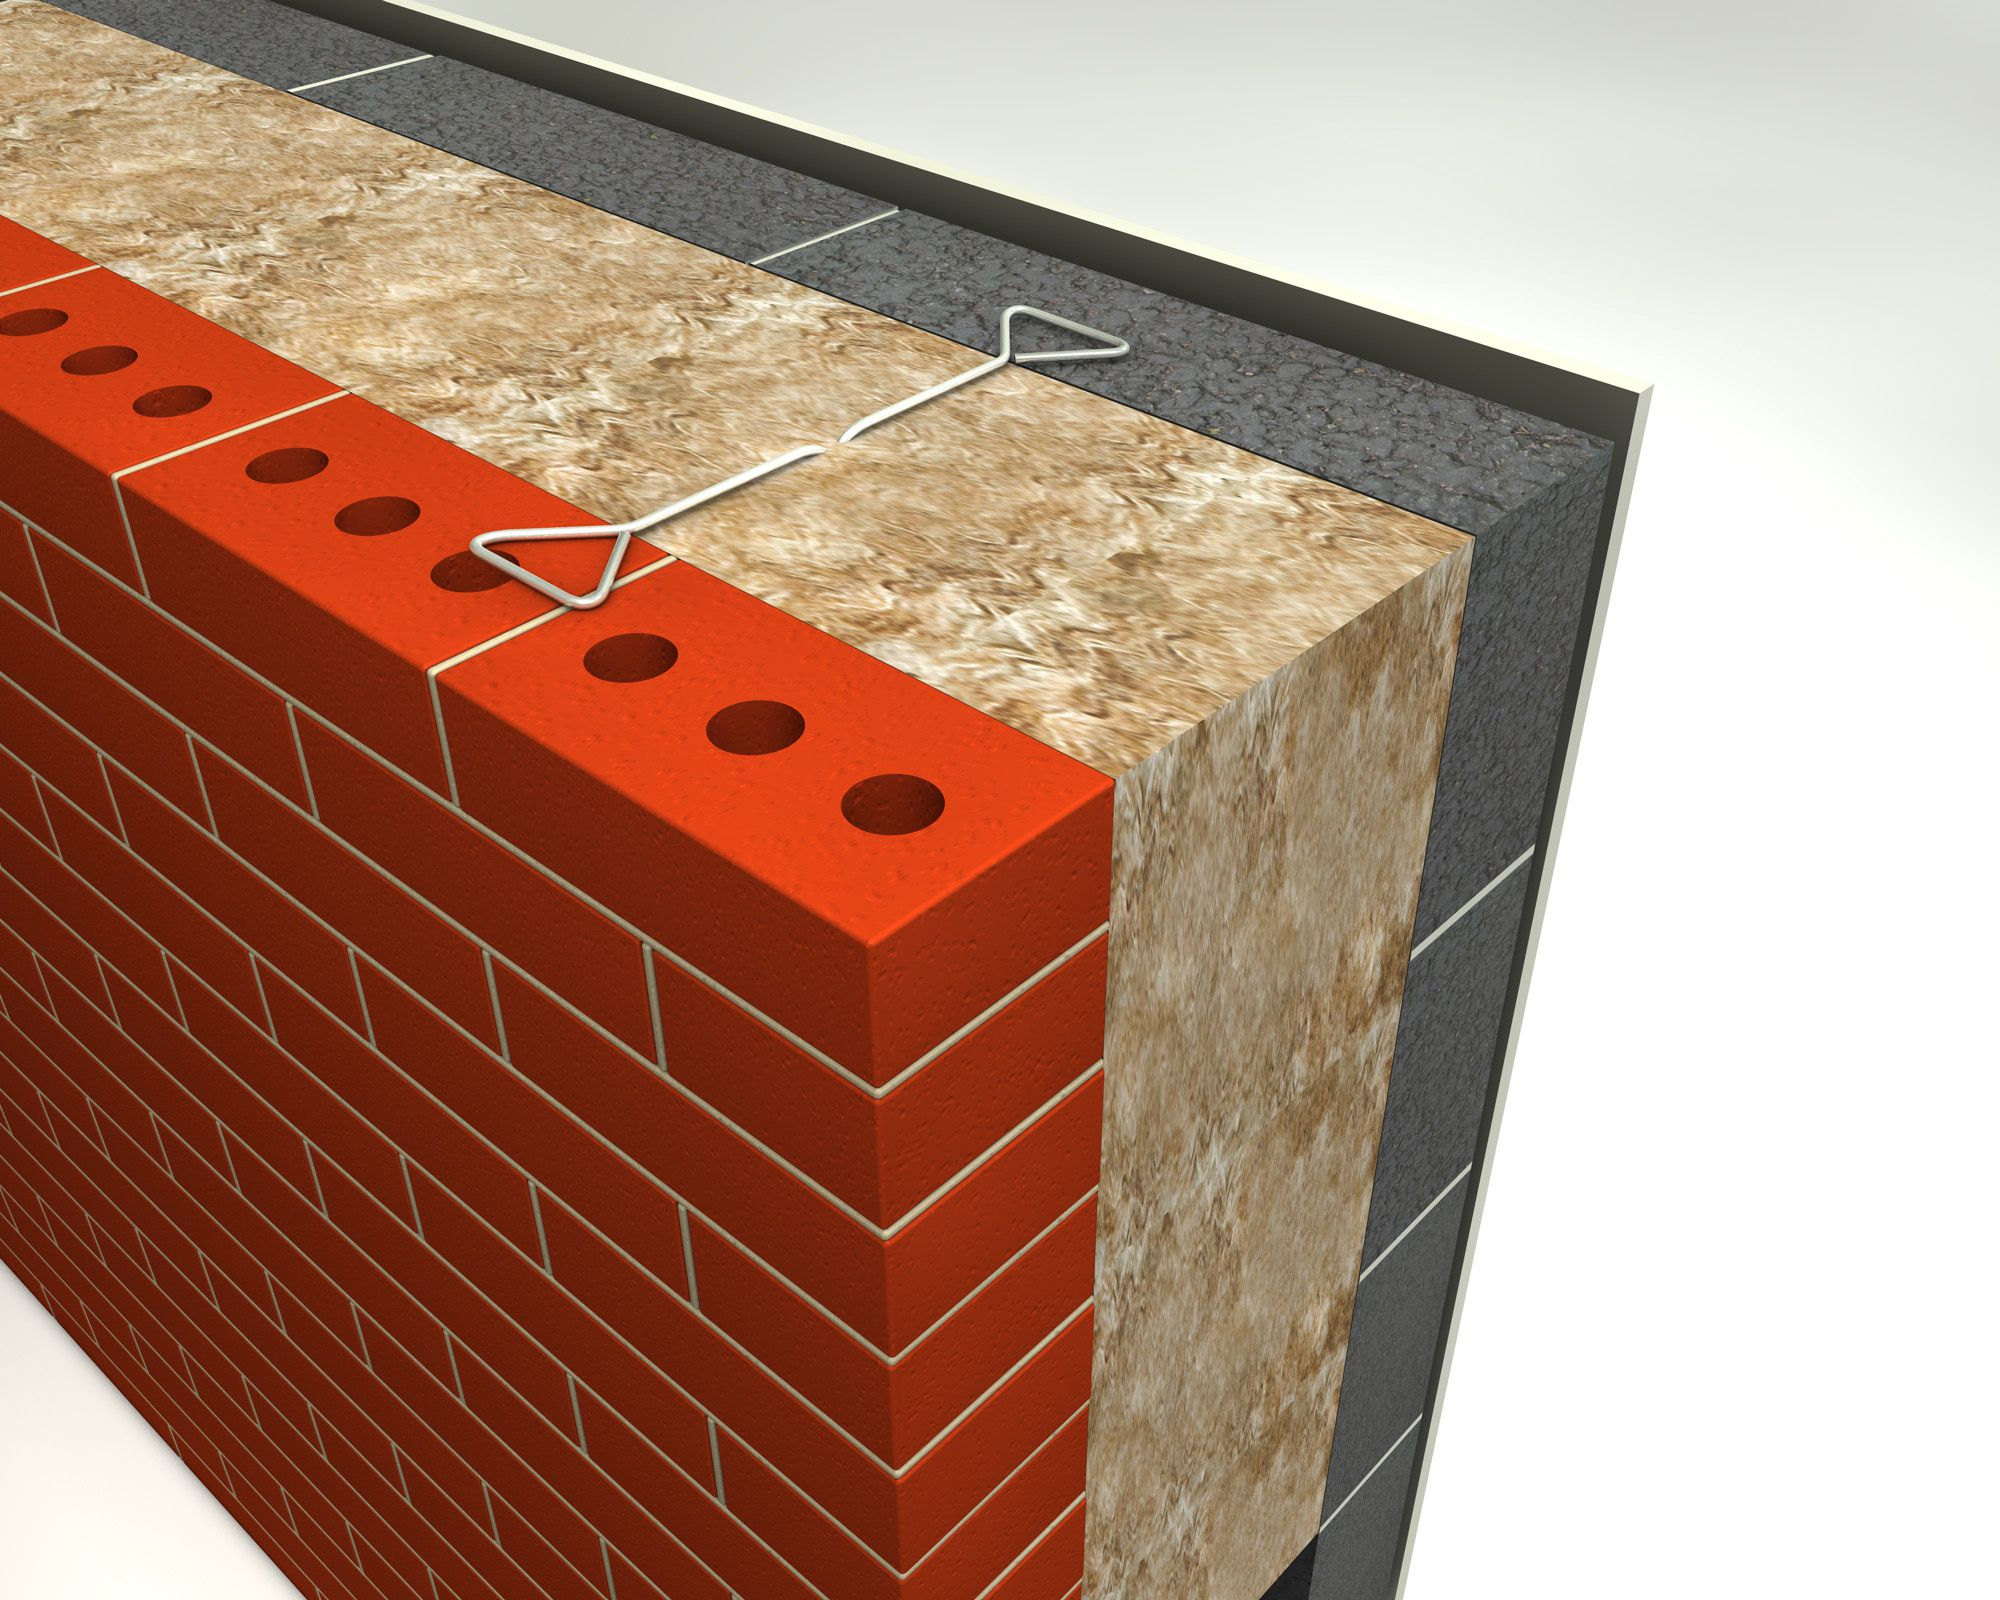 Cavity Wall Insulation Materials : This example shows layer aircrete insulation we would